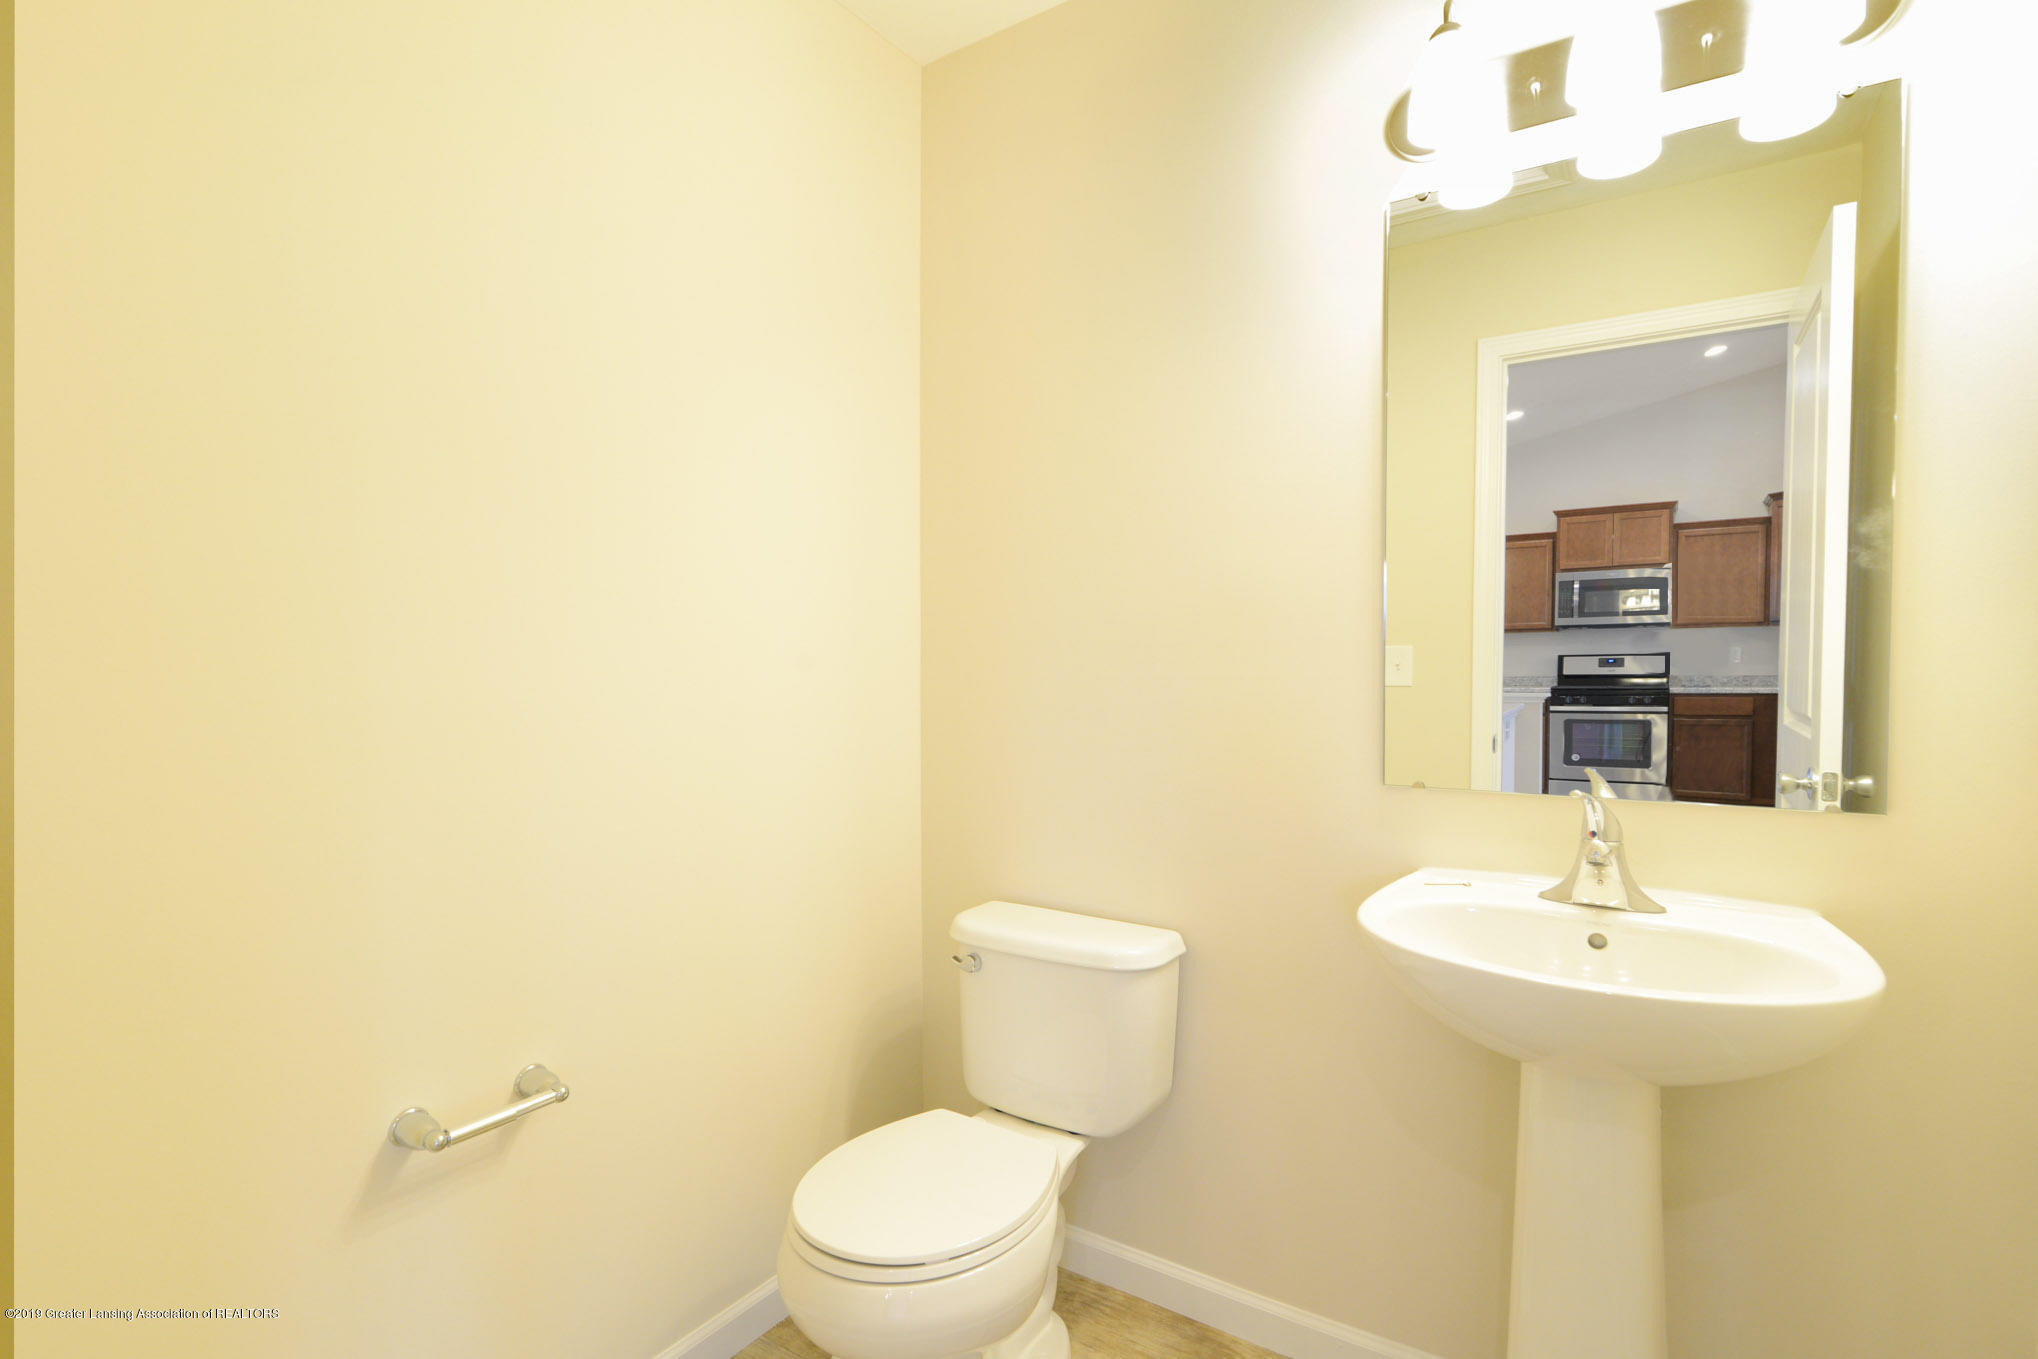 3532 Fernwood Ln - GDN069-C2040-Powder Room - 6